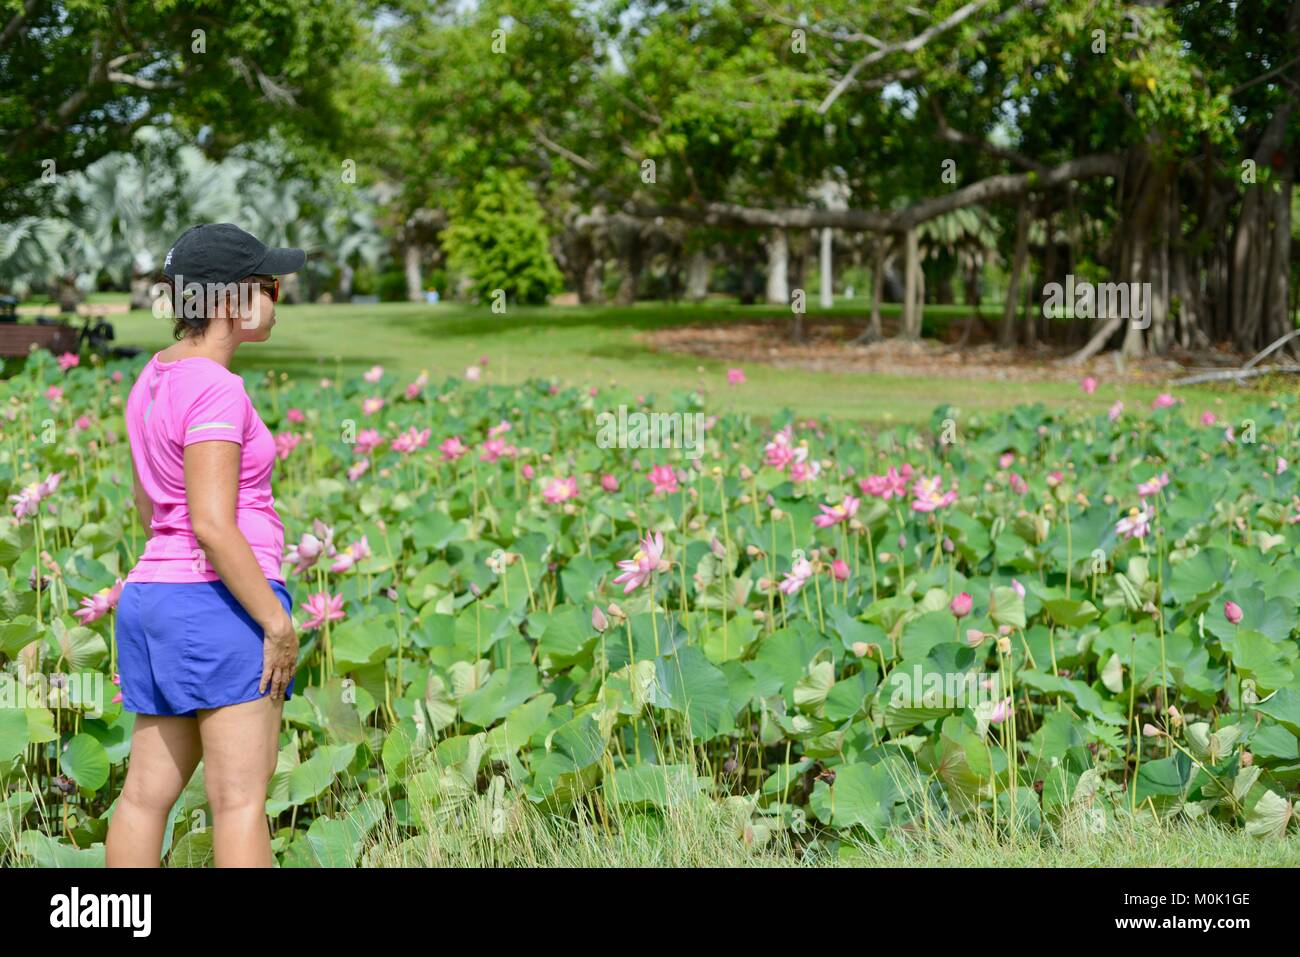 Women with pink sports top enjoying Anderson Park Botanic Gardens, Townsville, Queensland, Australia Stock Photo